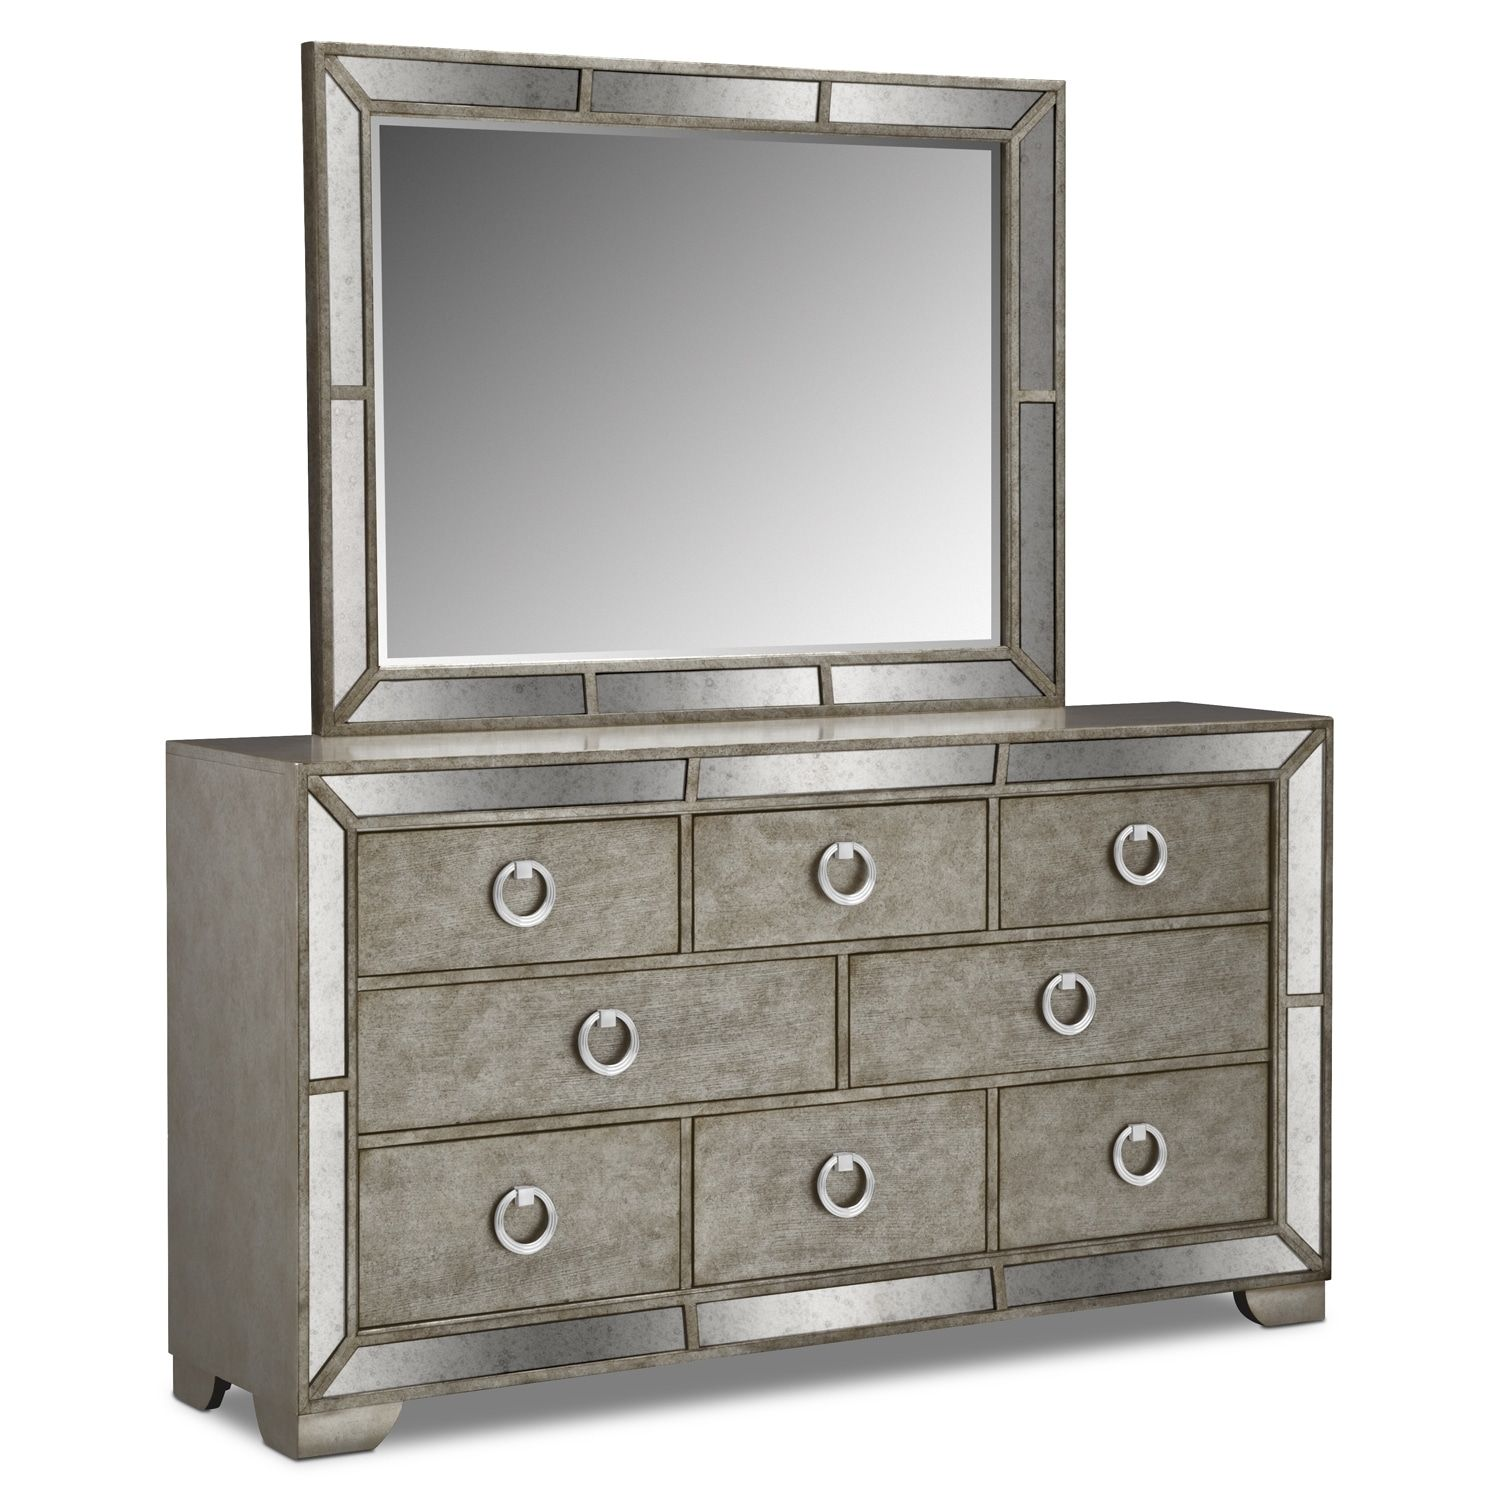 Cool bedroom furniture mirrored furniture office furniture mirrored vanity luxury furniture